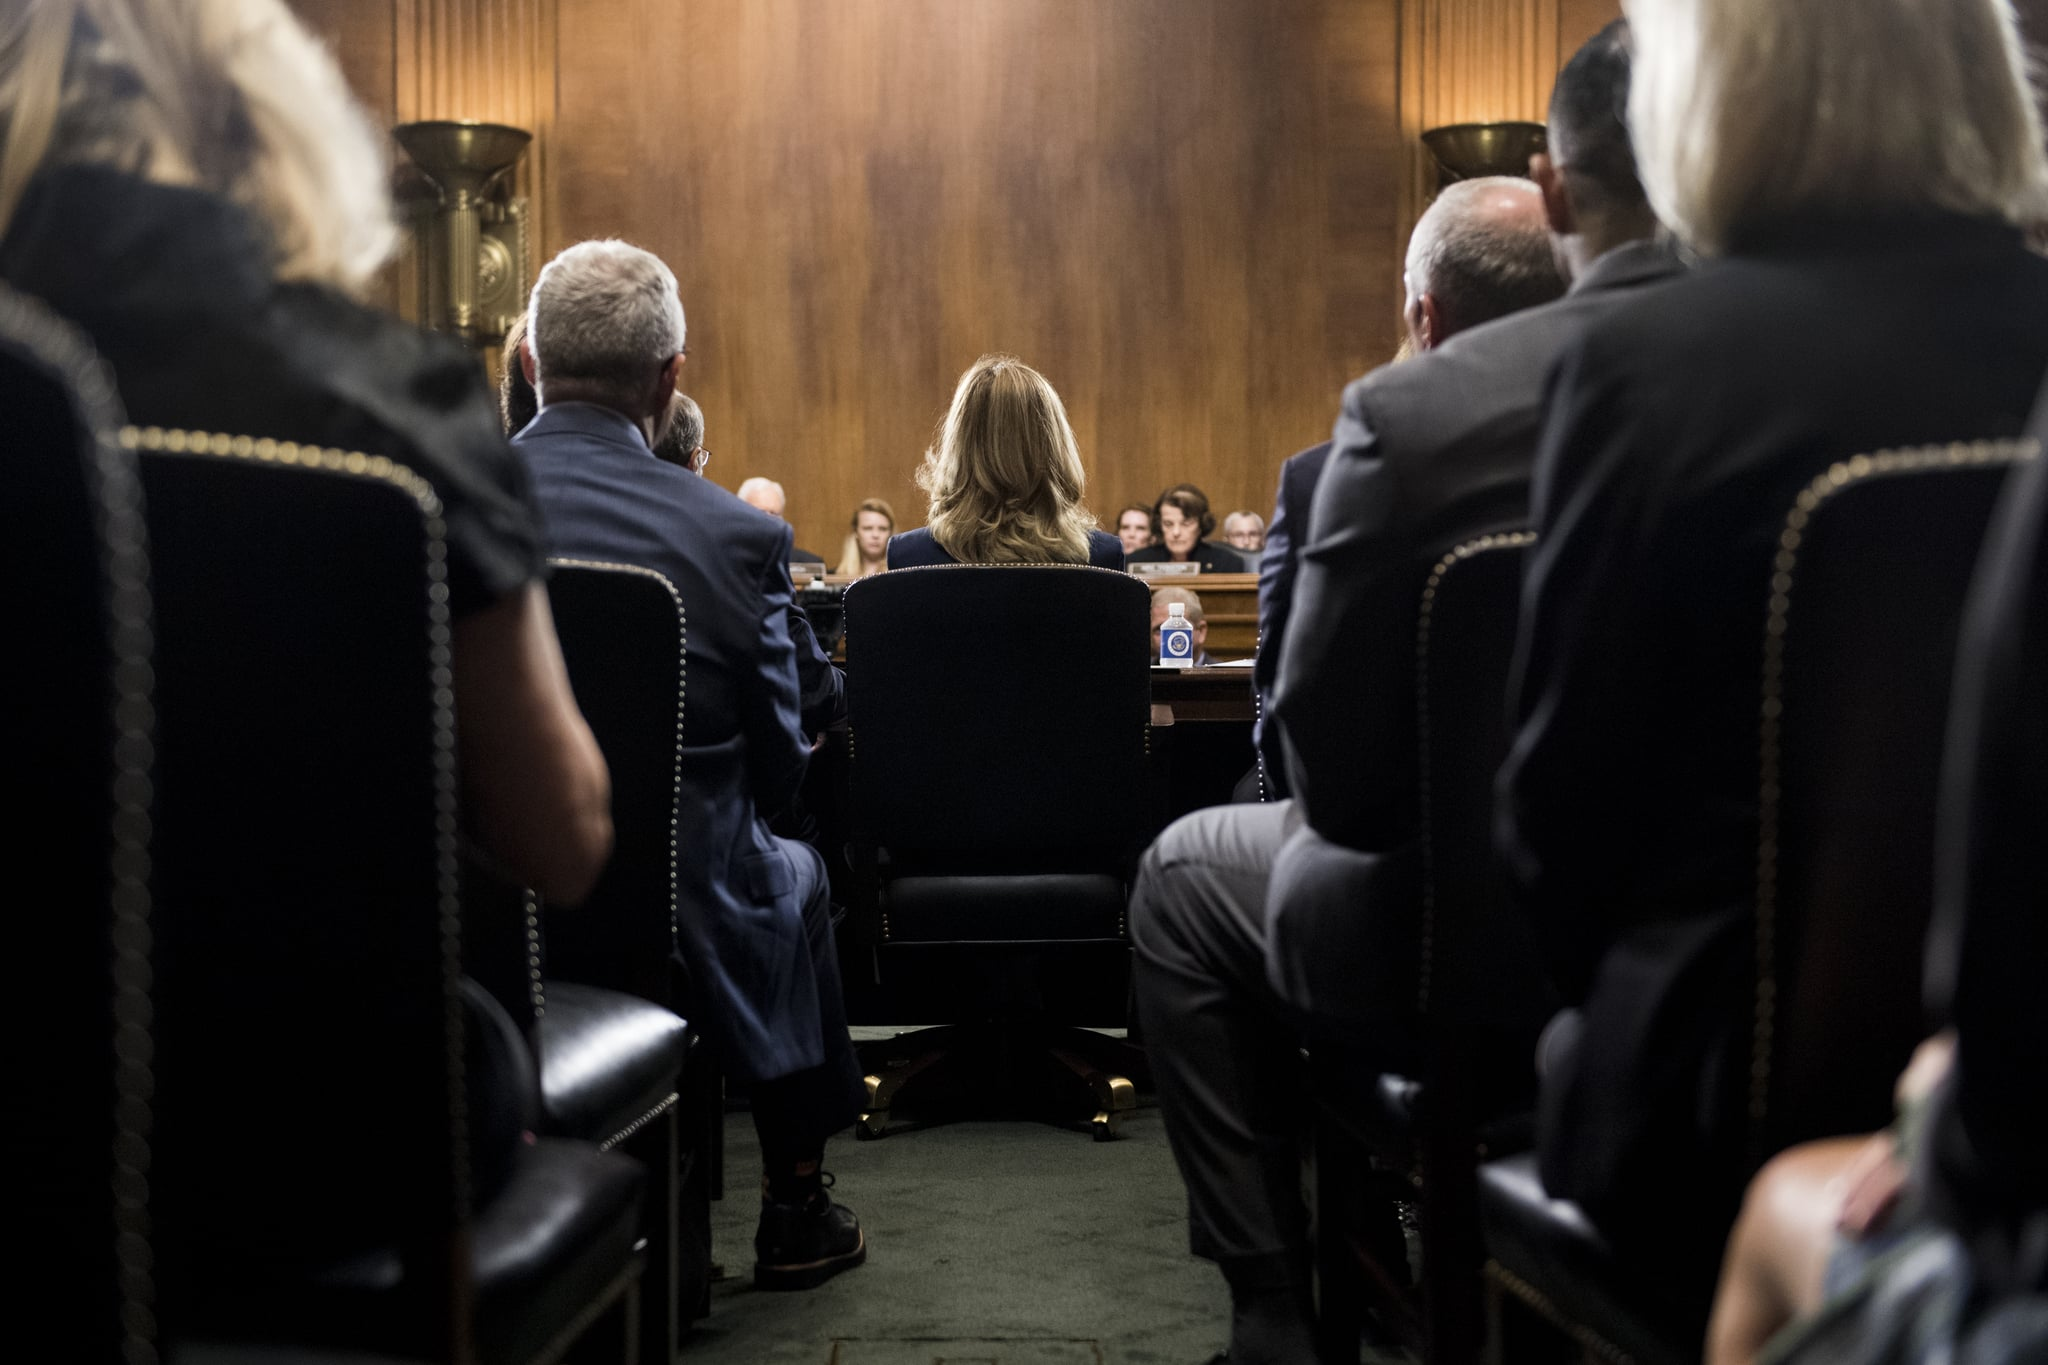 WASHINGTON, DC - SEPTEMBER 27: Dr. Christine Blasey Ford (C) takes her seat to testify on Capitol Hill September 27, 2018 in Washington, DC. A professor at Palo Alto University and a research psychologist at the Stanford University School of Medicine, Ford has accused Supreme Court nominee Judge Brett Kavanaugh of sexually assaulting her during a party in 1982 when they were high school students in suburban Maryland. (Photo By Tom Williams-Pool/Getty Images)